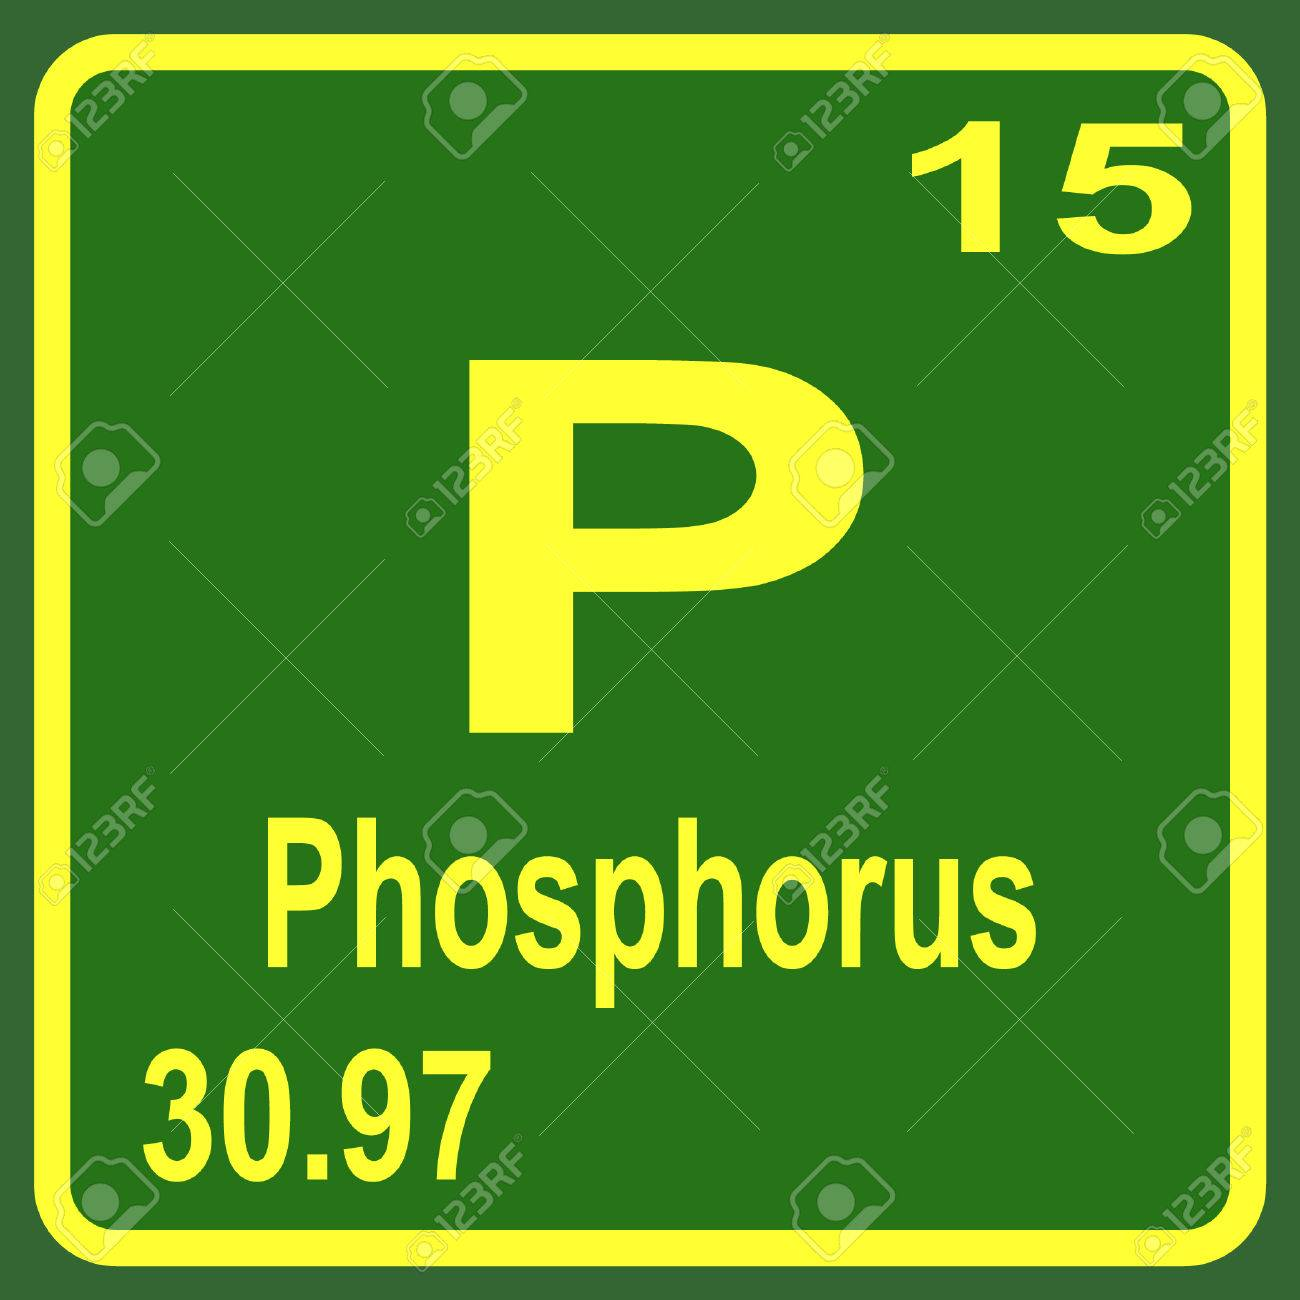 Periodic table of elements phosphorus royalty free cliparts periodic table of elements phosphorus stock vector 53900403 urtaz Images